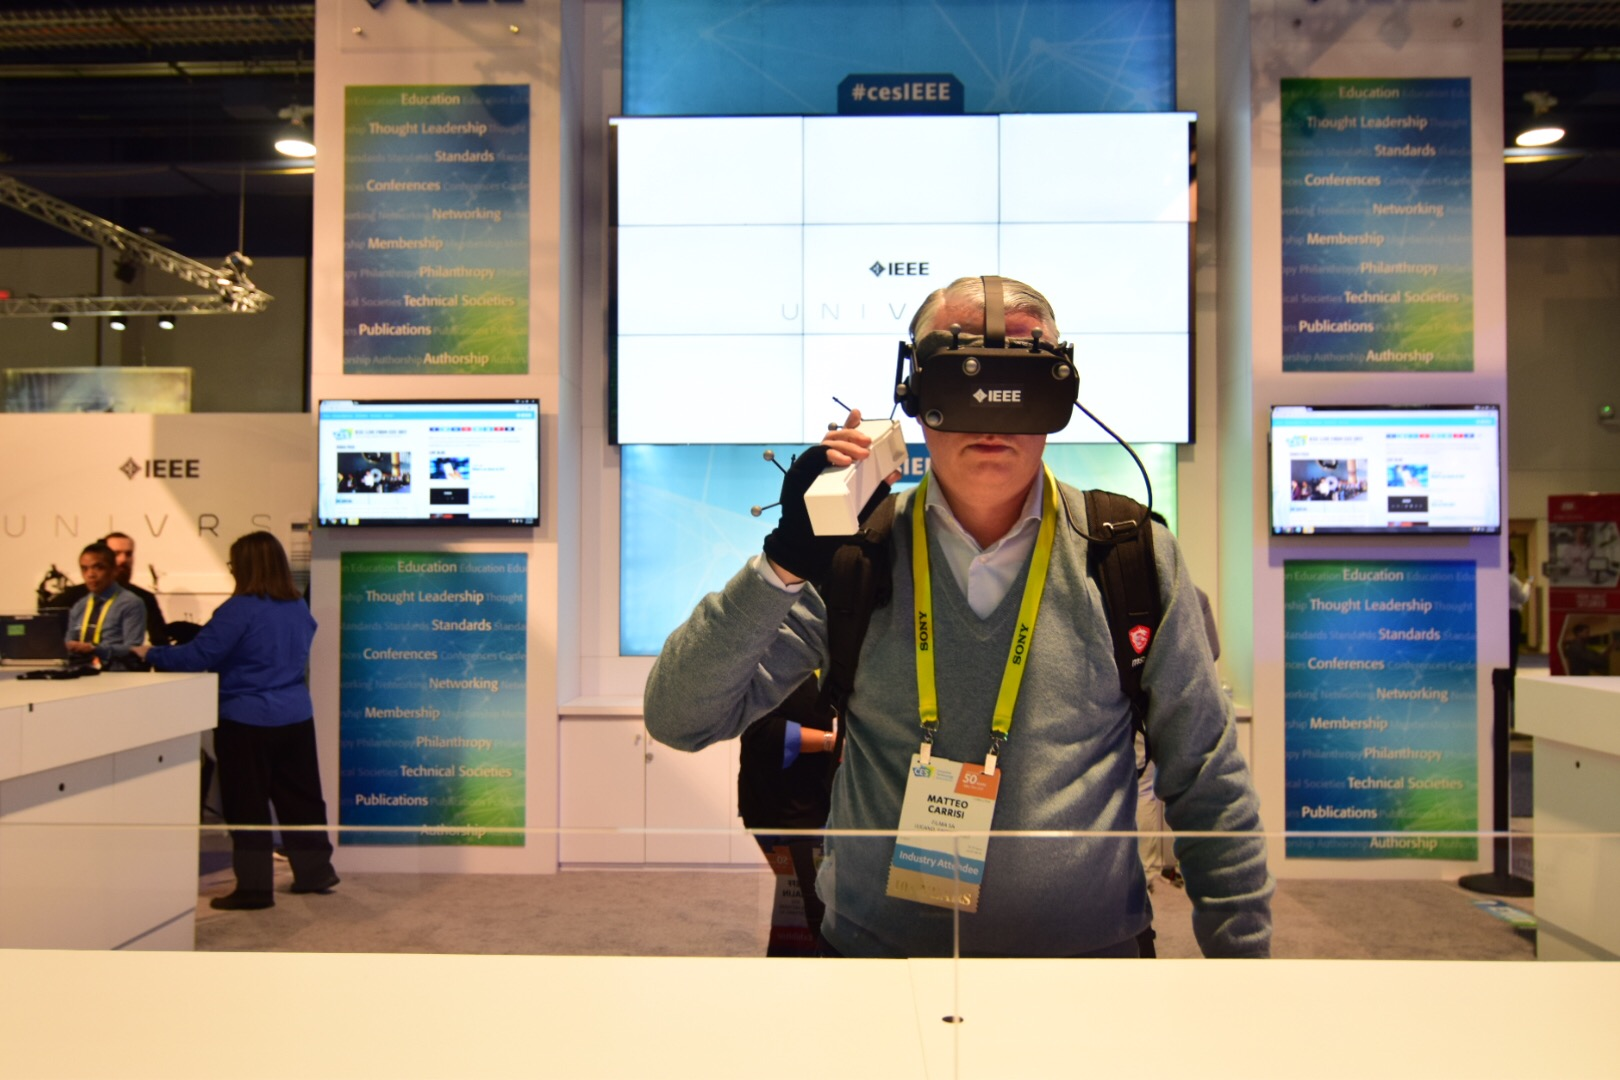 We're Live at CES 20217 - Explore the IEEE UniVRse!